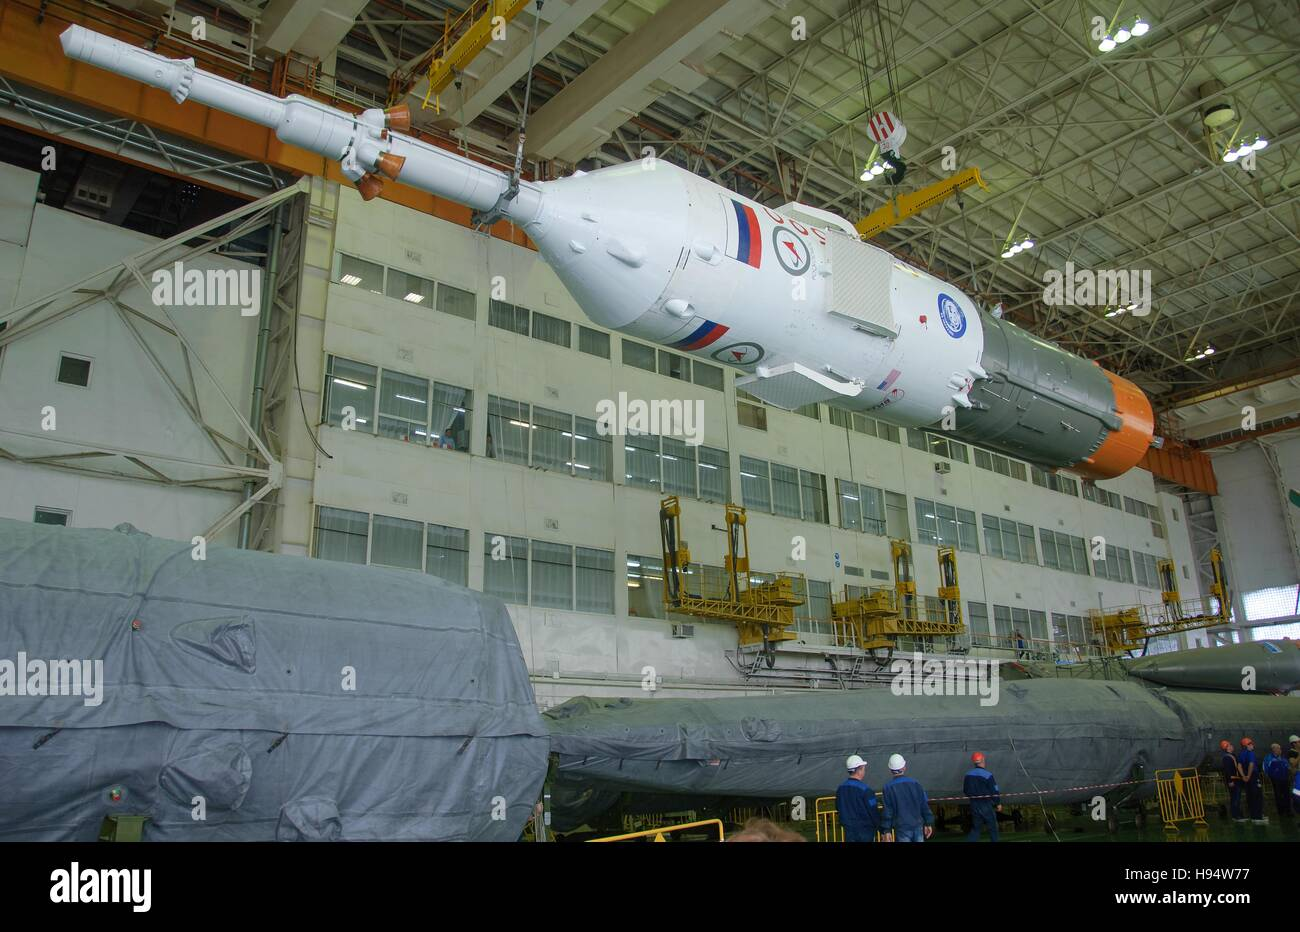 The Russian Soyuz rocket and Soyuz MS-03 spacecraft are assembled in preparation for the NASA International Space - Stock Image